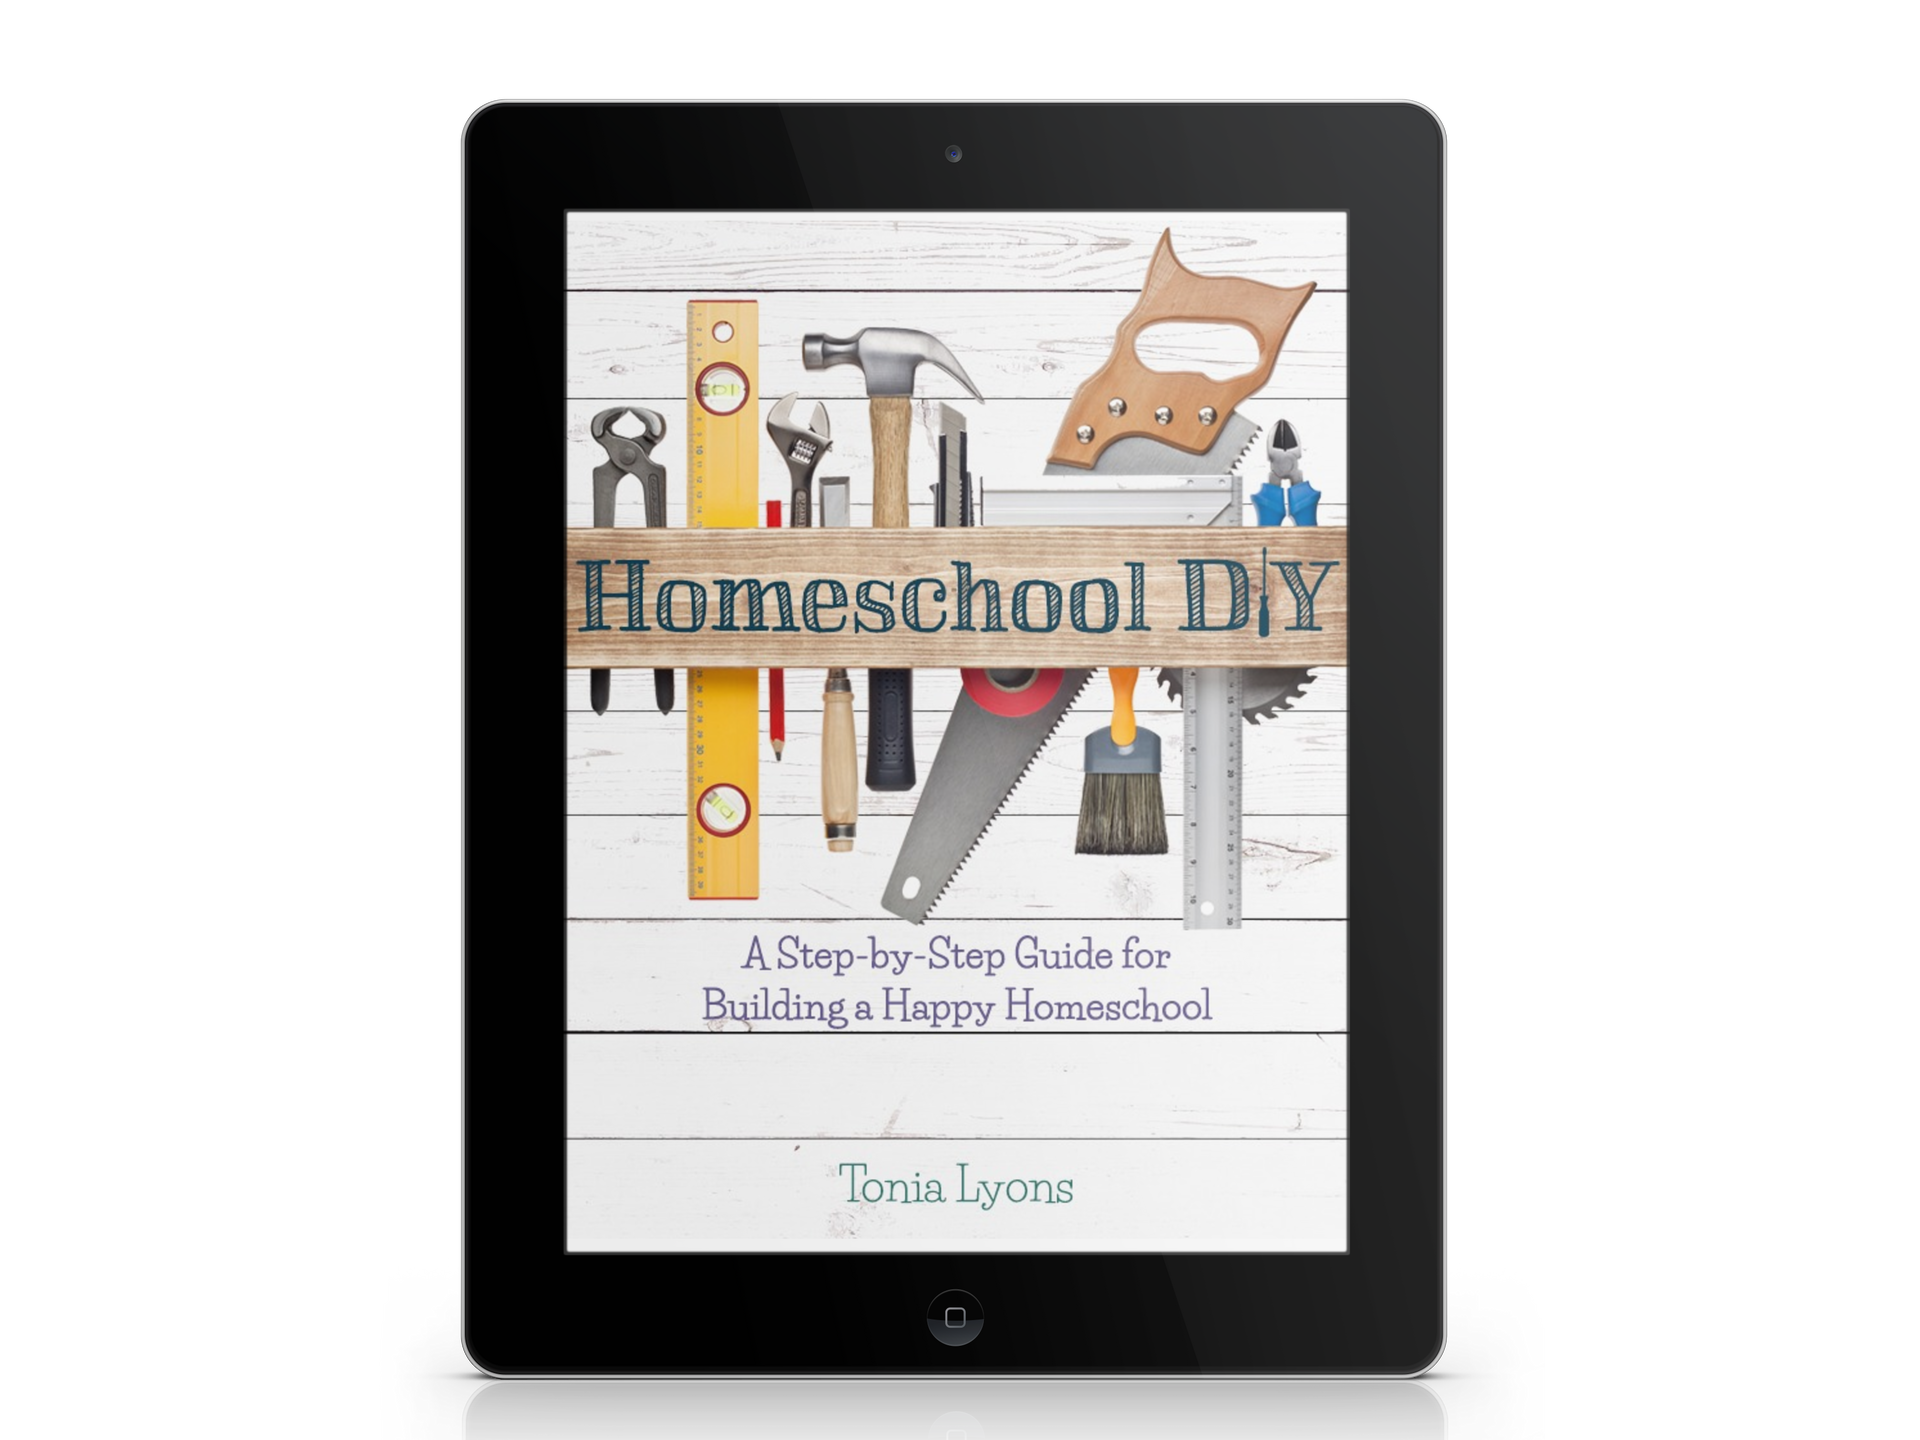 Homeschool DIY — your guide for building a happy homeschool. Learn how to write a homeschool missions statement, set goals for your homeschool, choose homeschooling curriculum, and plan your homeschool day.